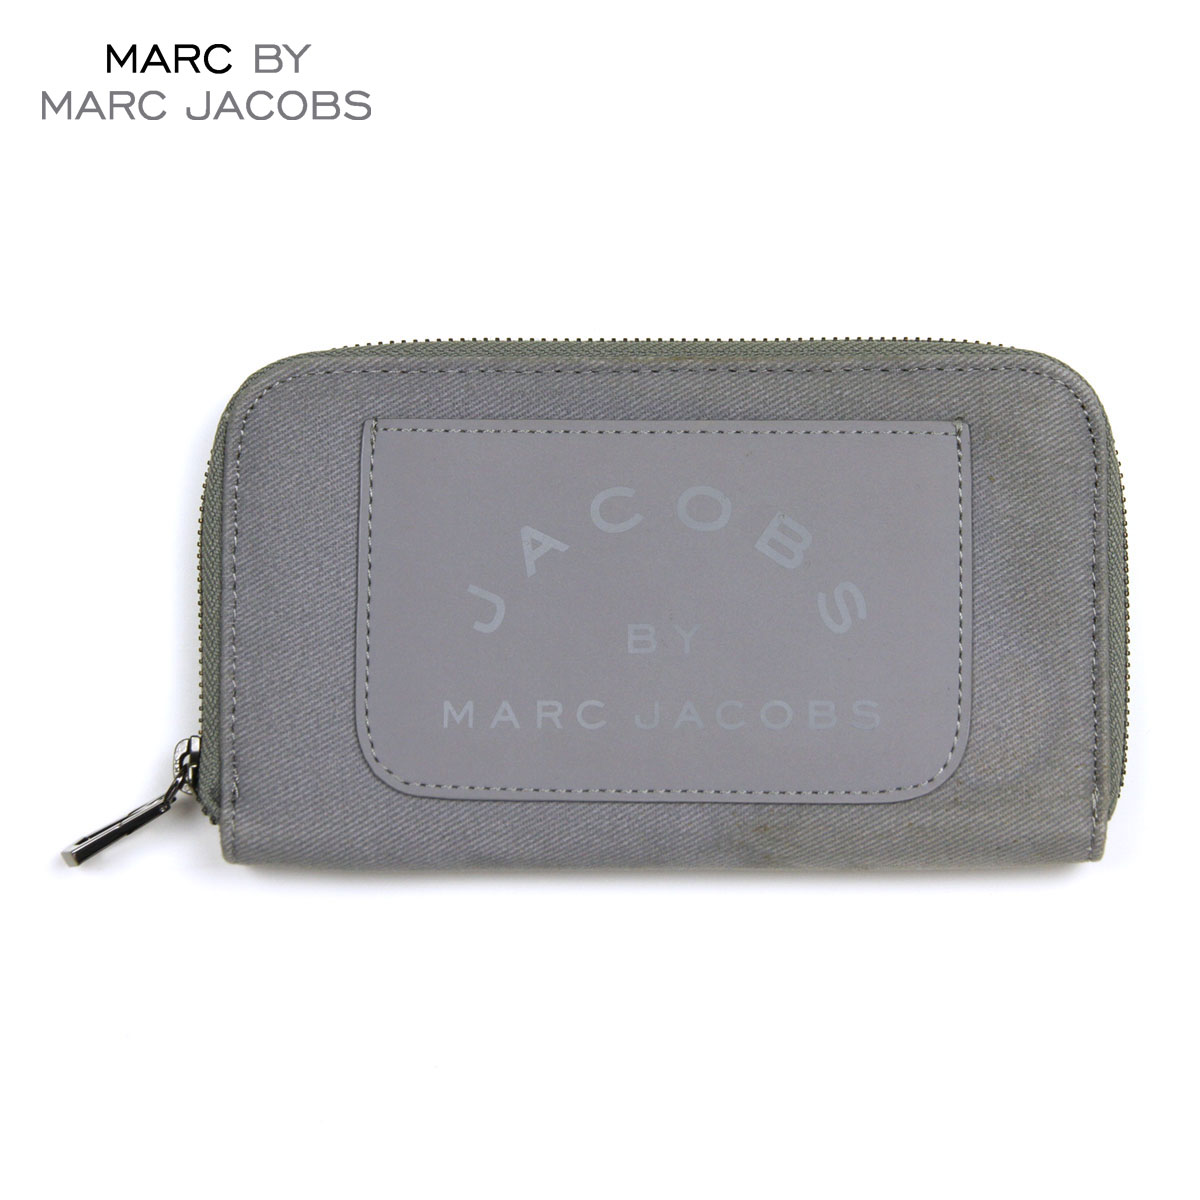 30%OFFセール 【販売期間 2/21 10:00〜2/25 09:59】 マークジェイコブス MARCJACOBS 正規品 財布 Laminated Twill Jacobs Long Zip Wallet (W19*H11cm) D20S30